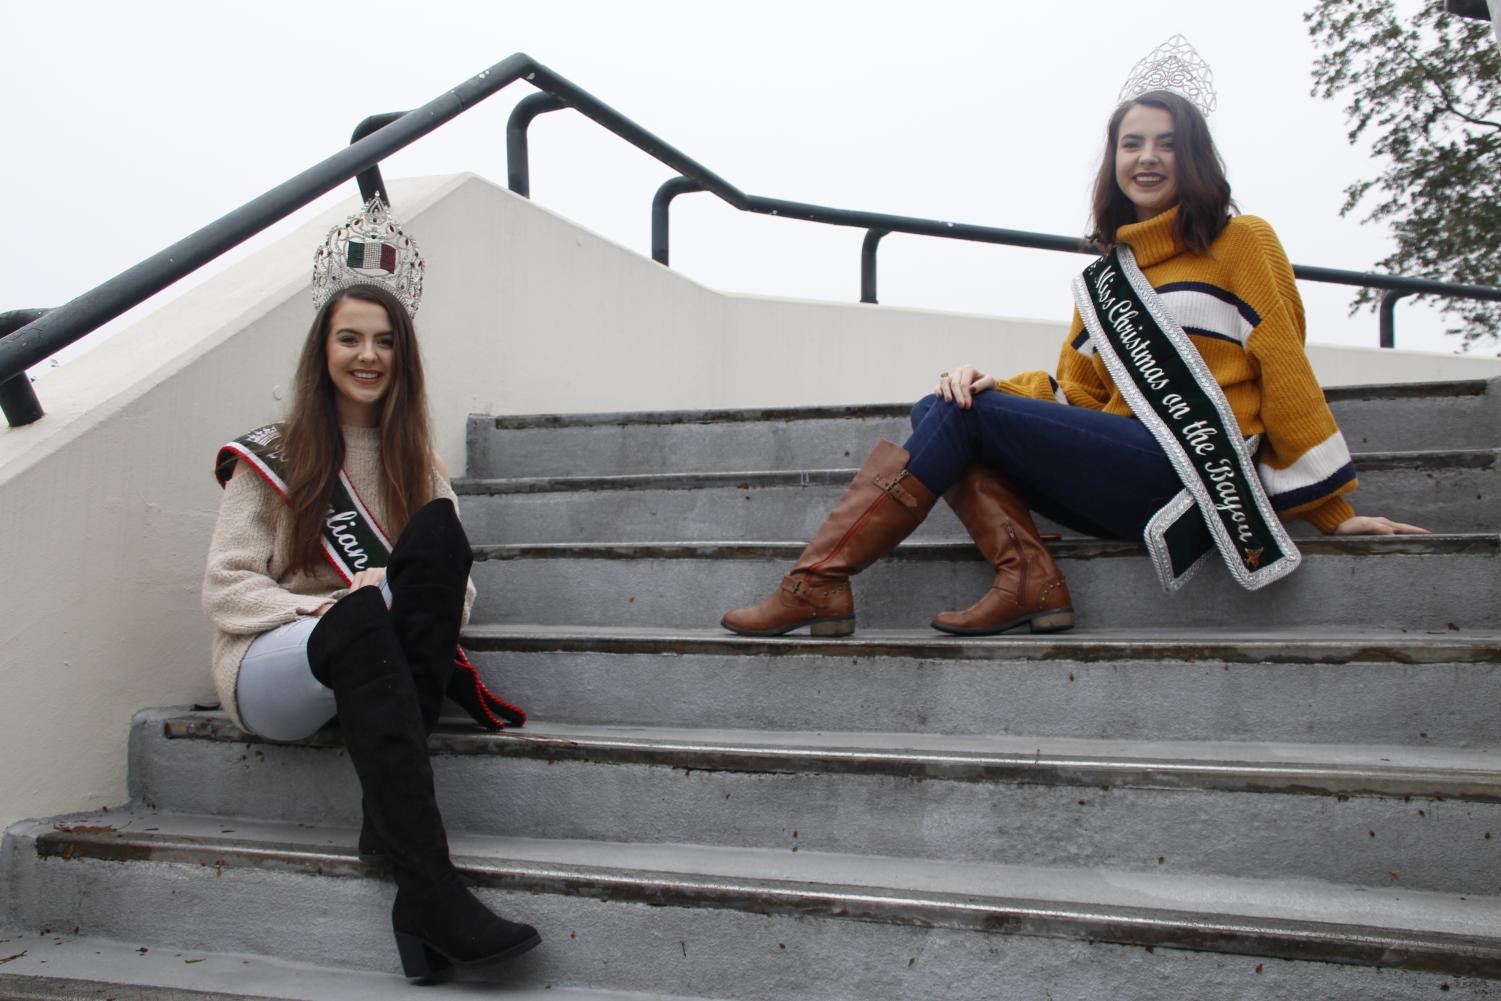 Sisters Mason and Madison Burnette, left to right, represent their community by participating in pageants. They hold the Miss Italian Festival and Miss Christmas on the Bayou titles, respectively.